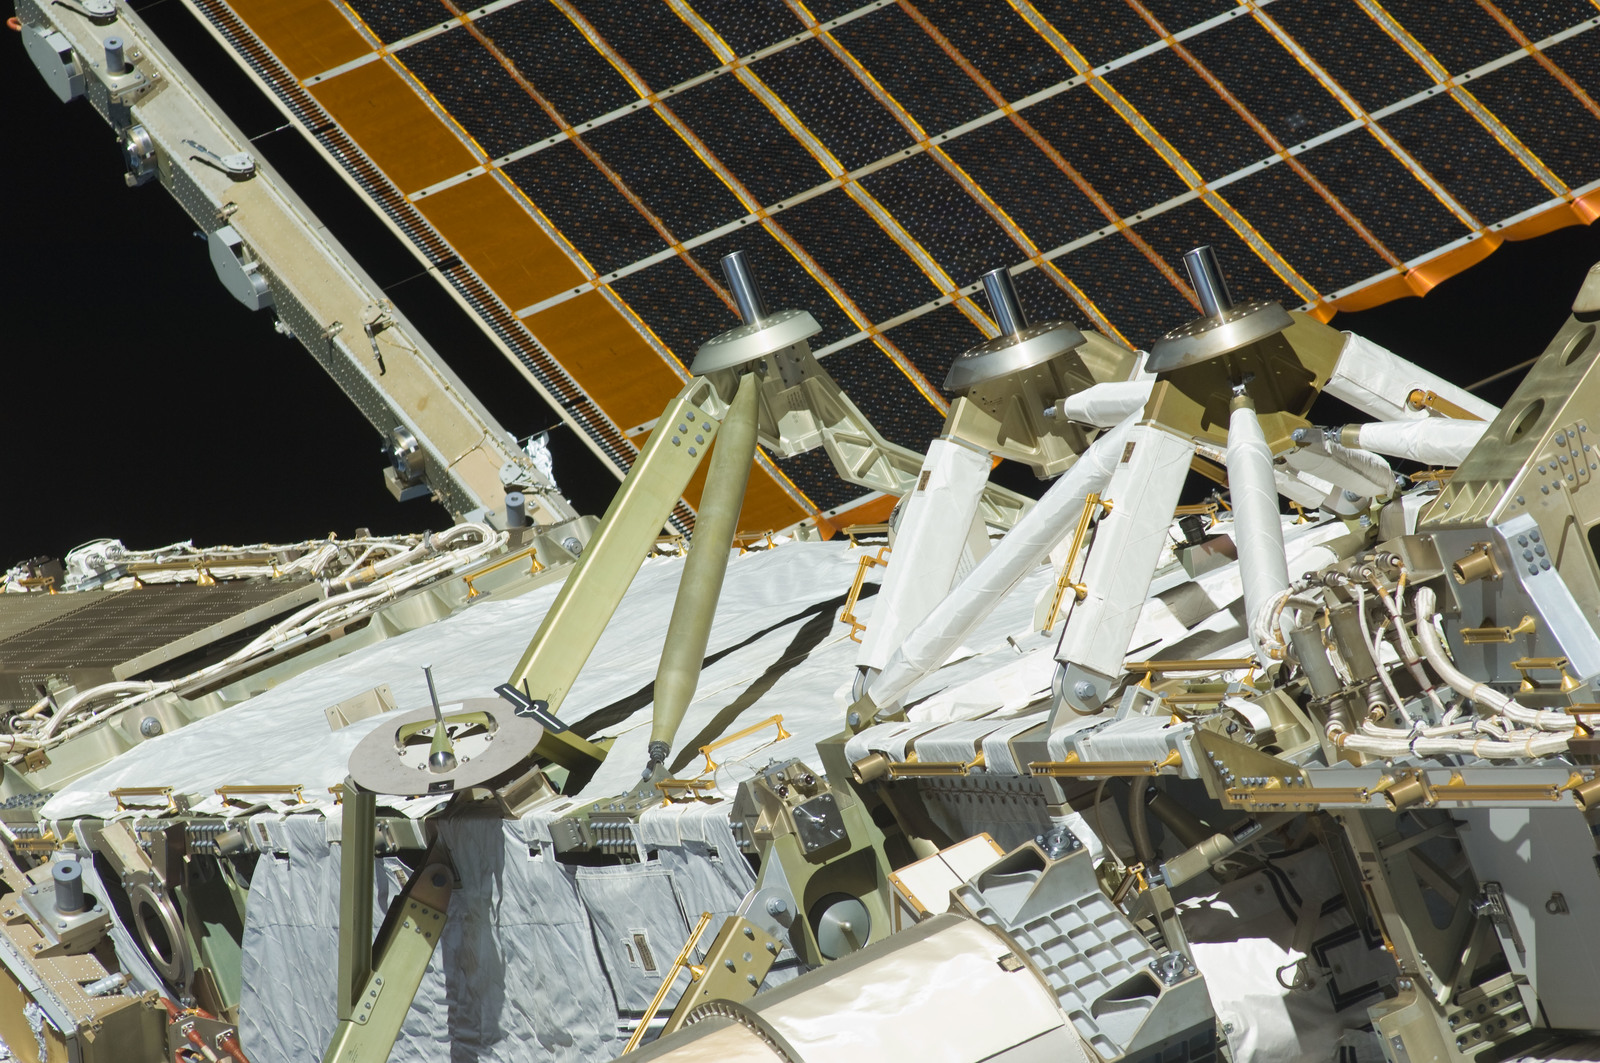 S129E011358 - STS-129 - Exterior close-up view of a Truss Segment